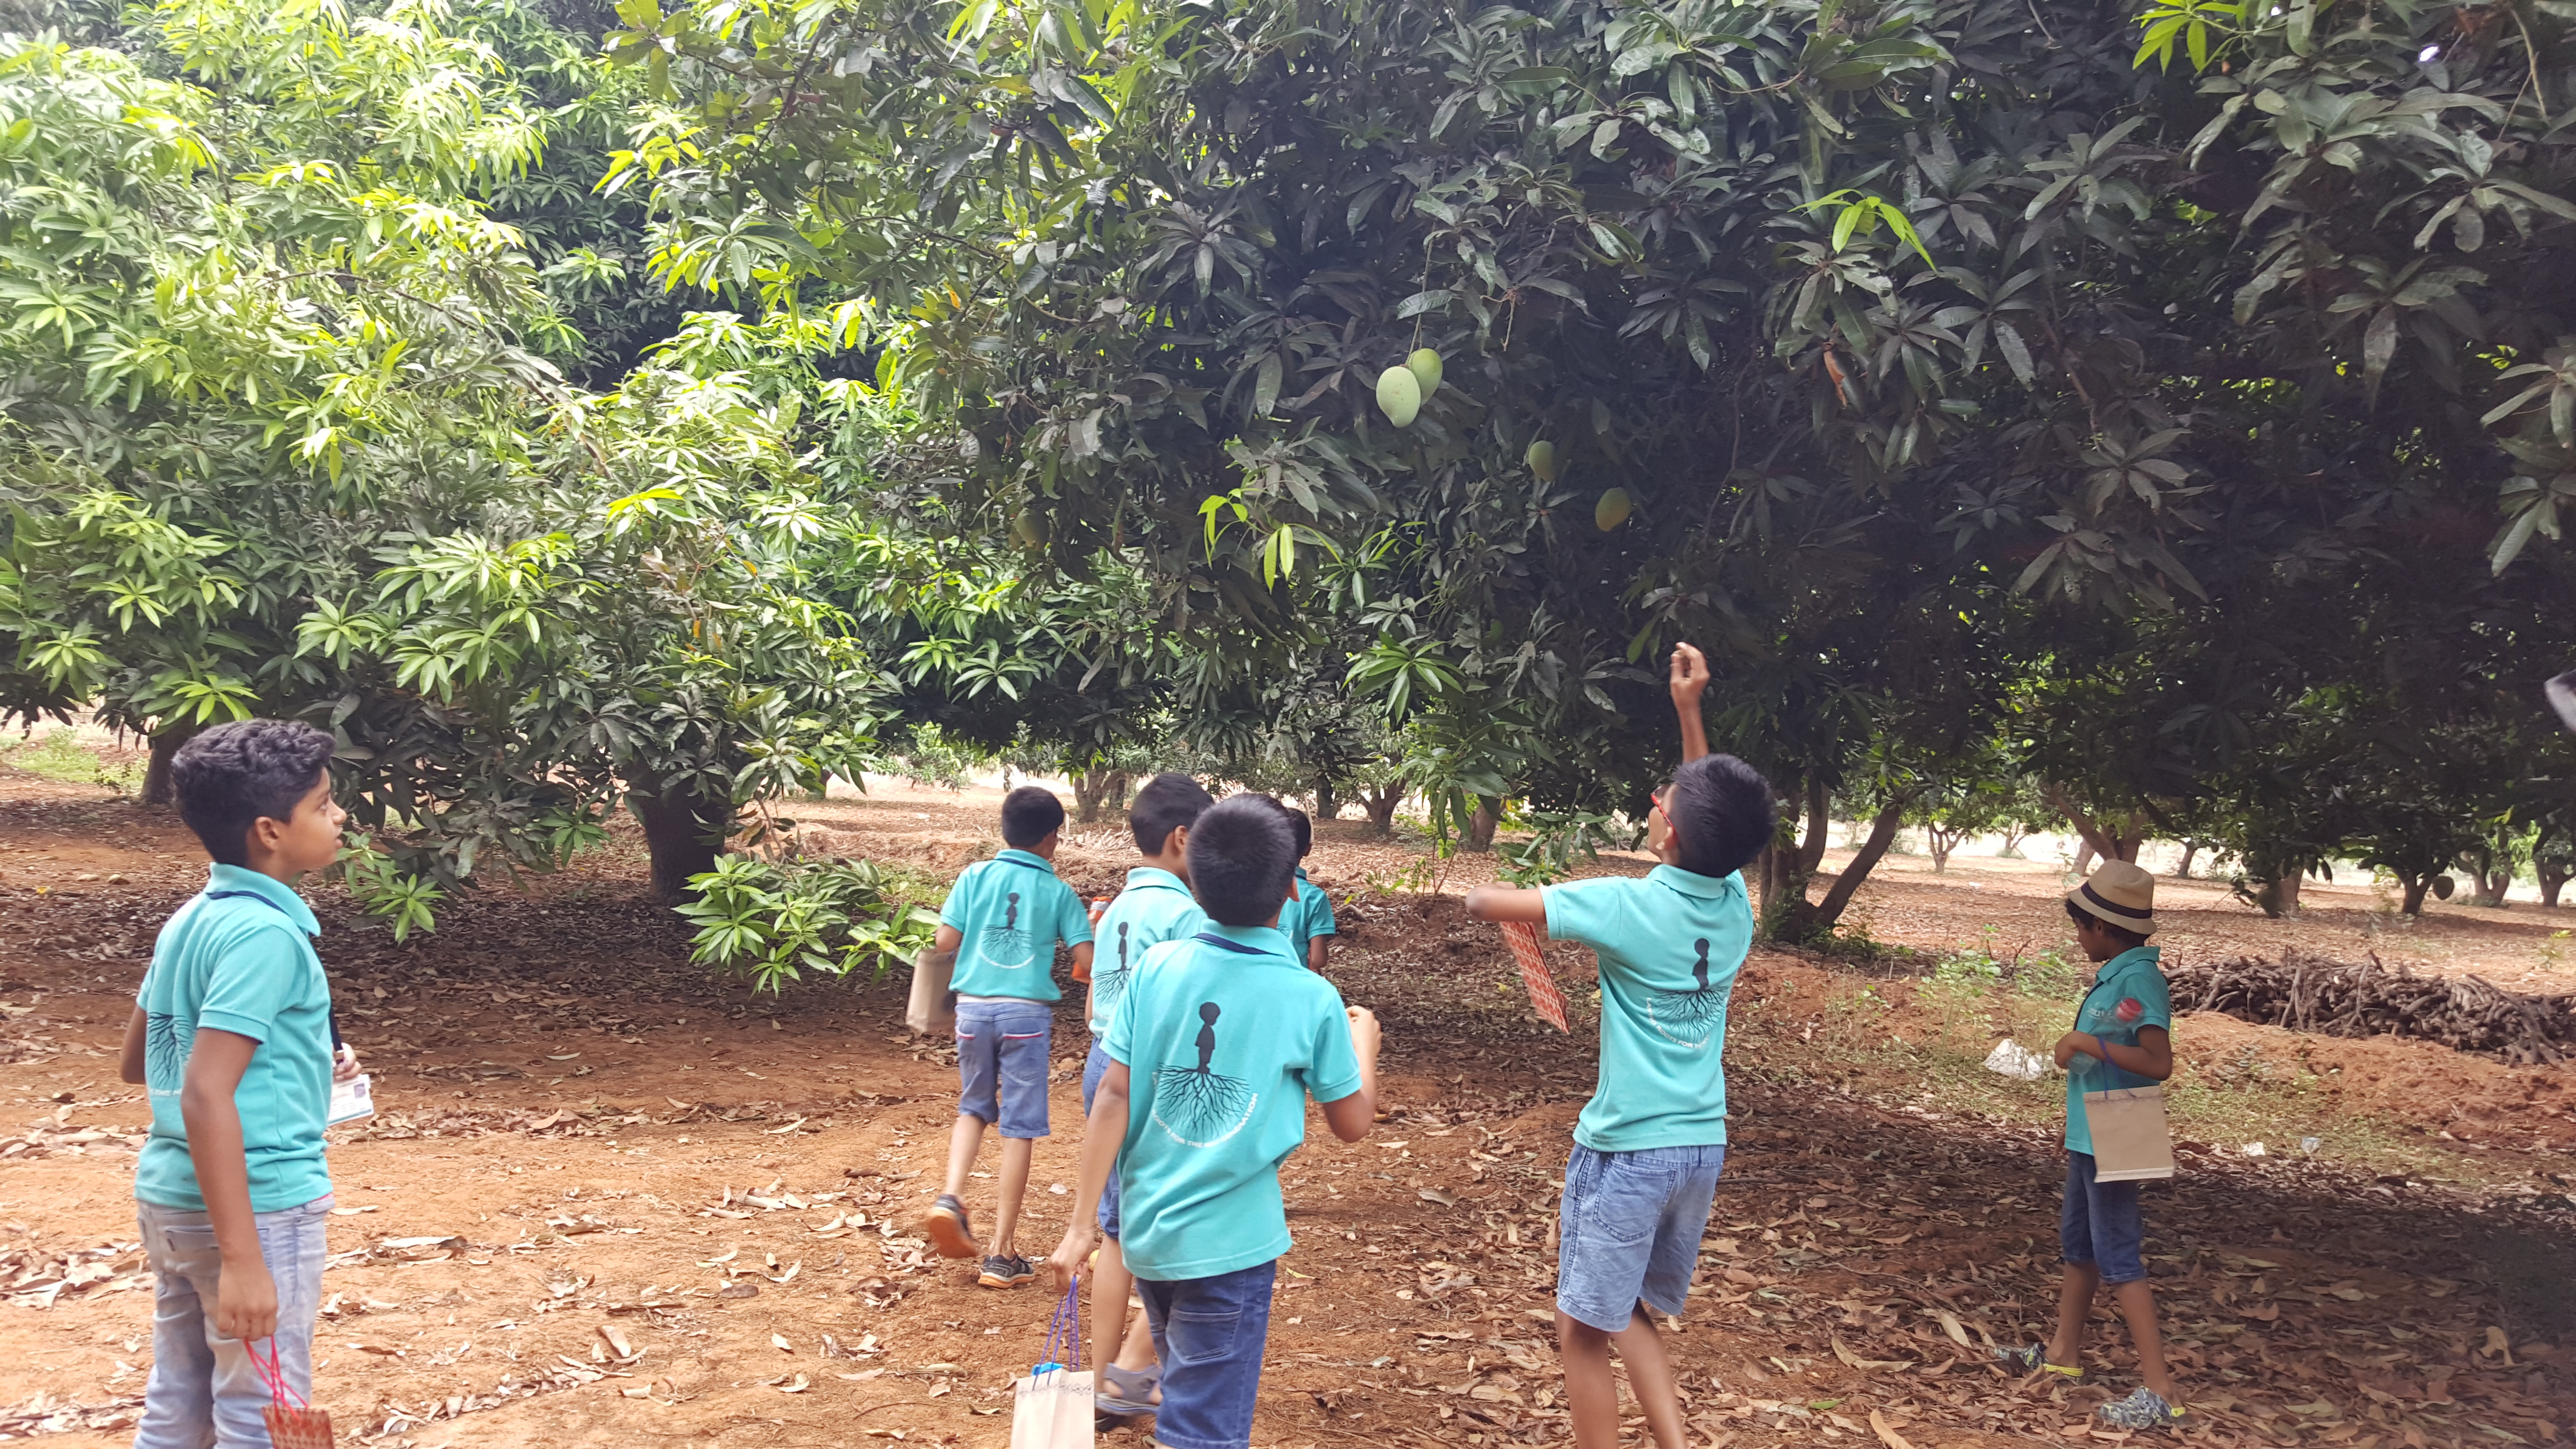 Trying their luck at plucking mangoes